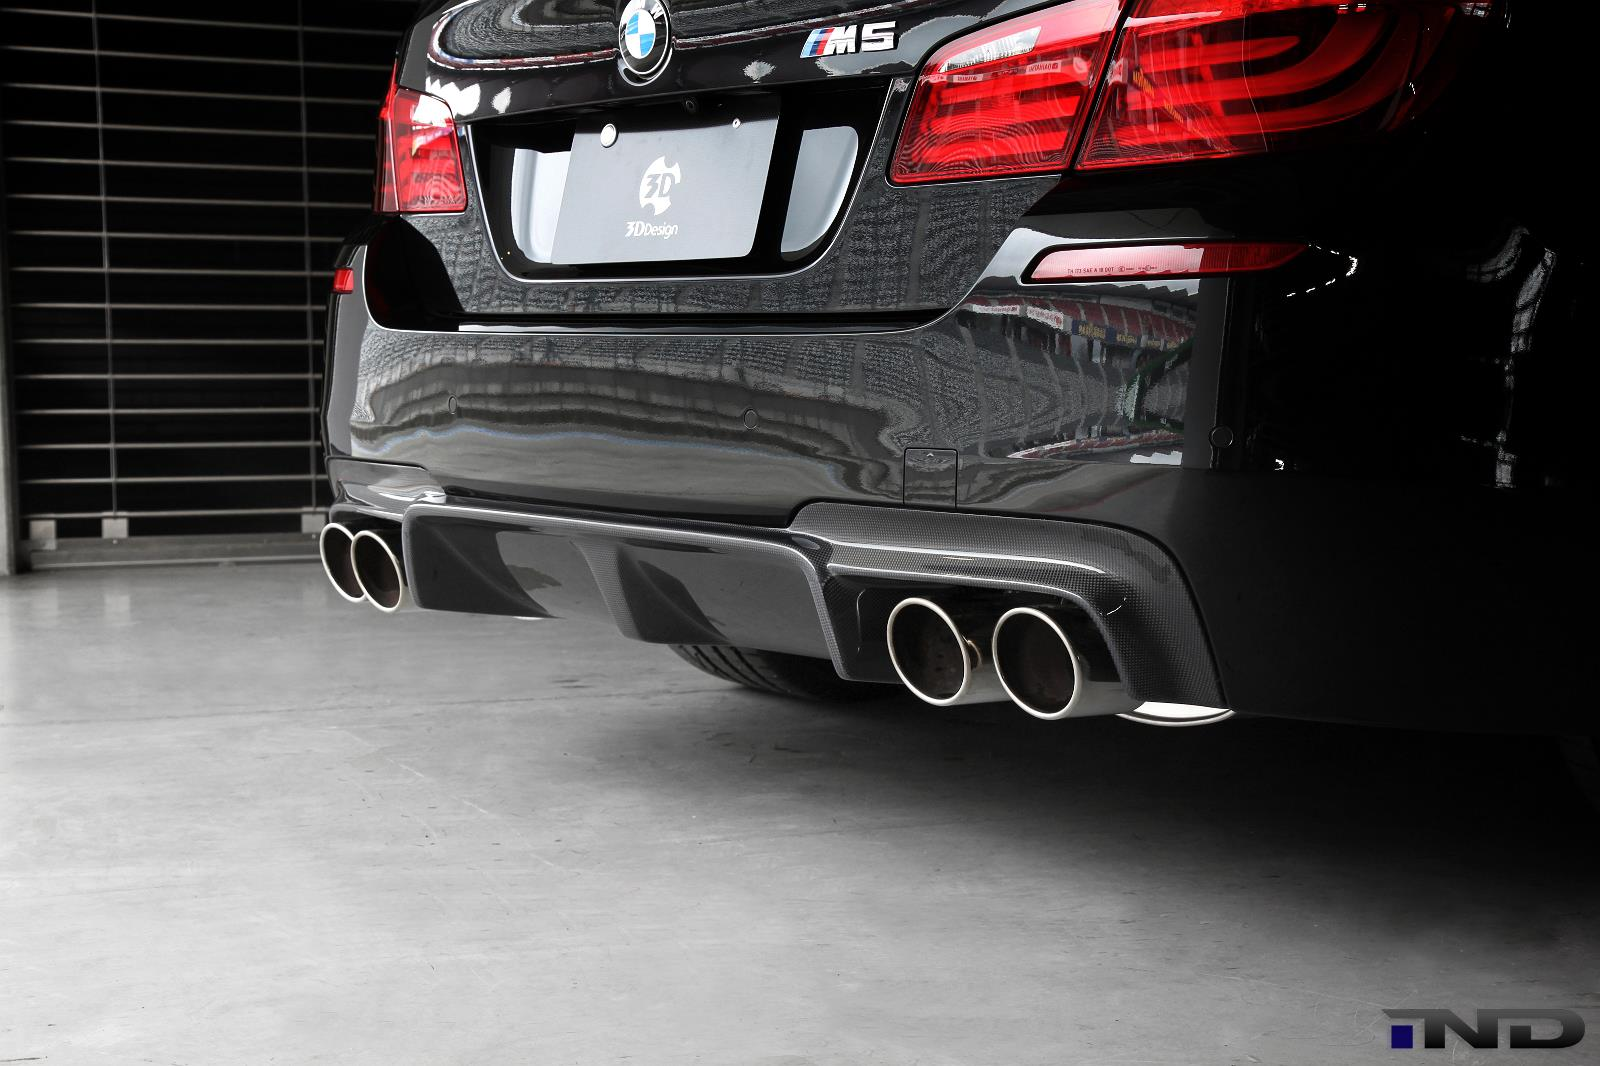 //www.autoblog.gr/wp-content/gallery/bmw-m5-f10-by-3d-design/bmw-m5-f10-by-3d-design-6.jpg